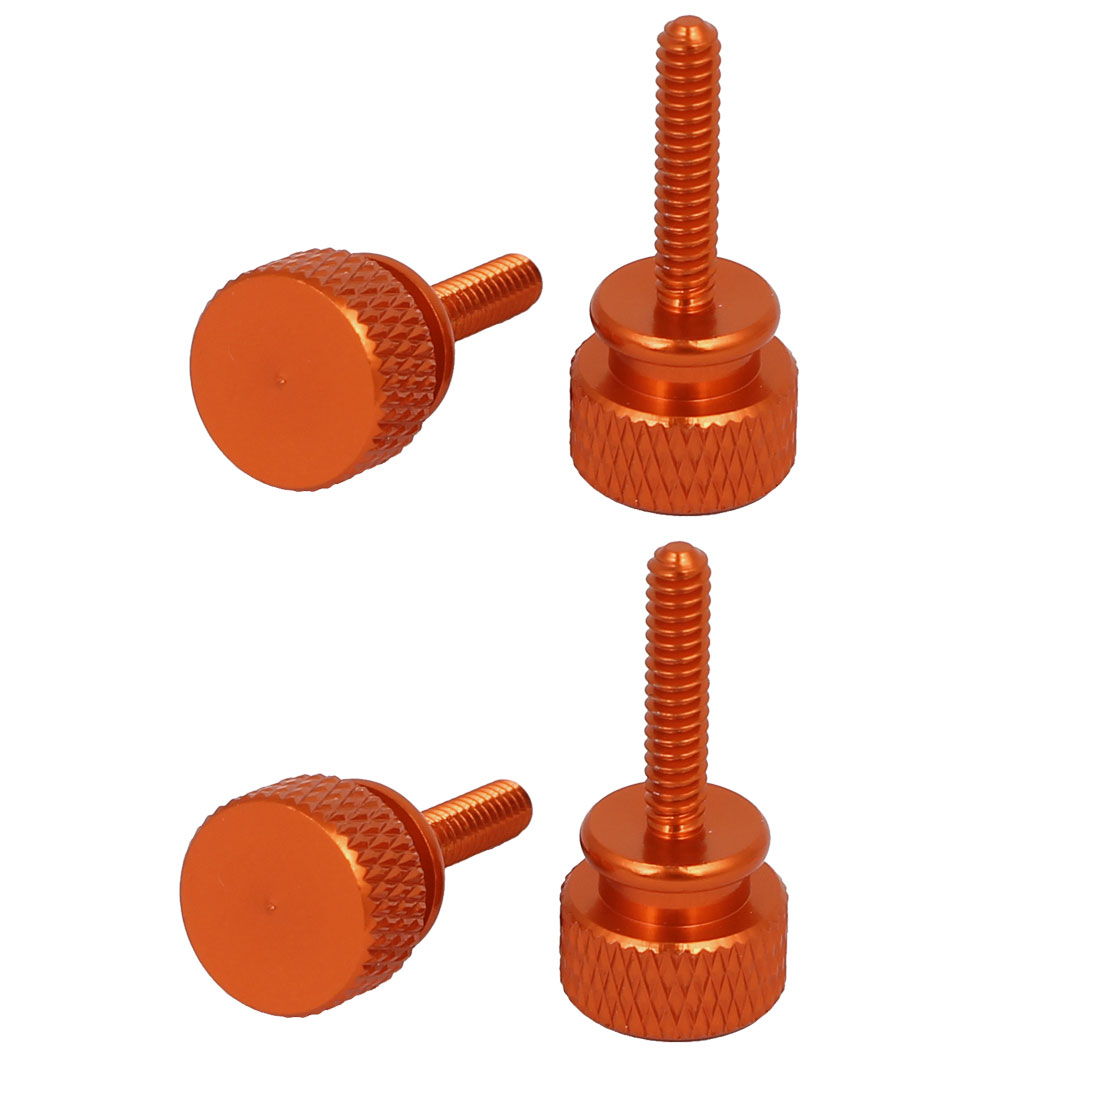 Computer PC Case Round Head Knurled Thumb Screws Orange 6#-32 4pcs